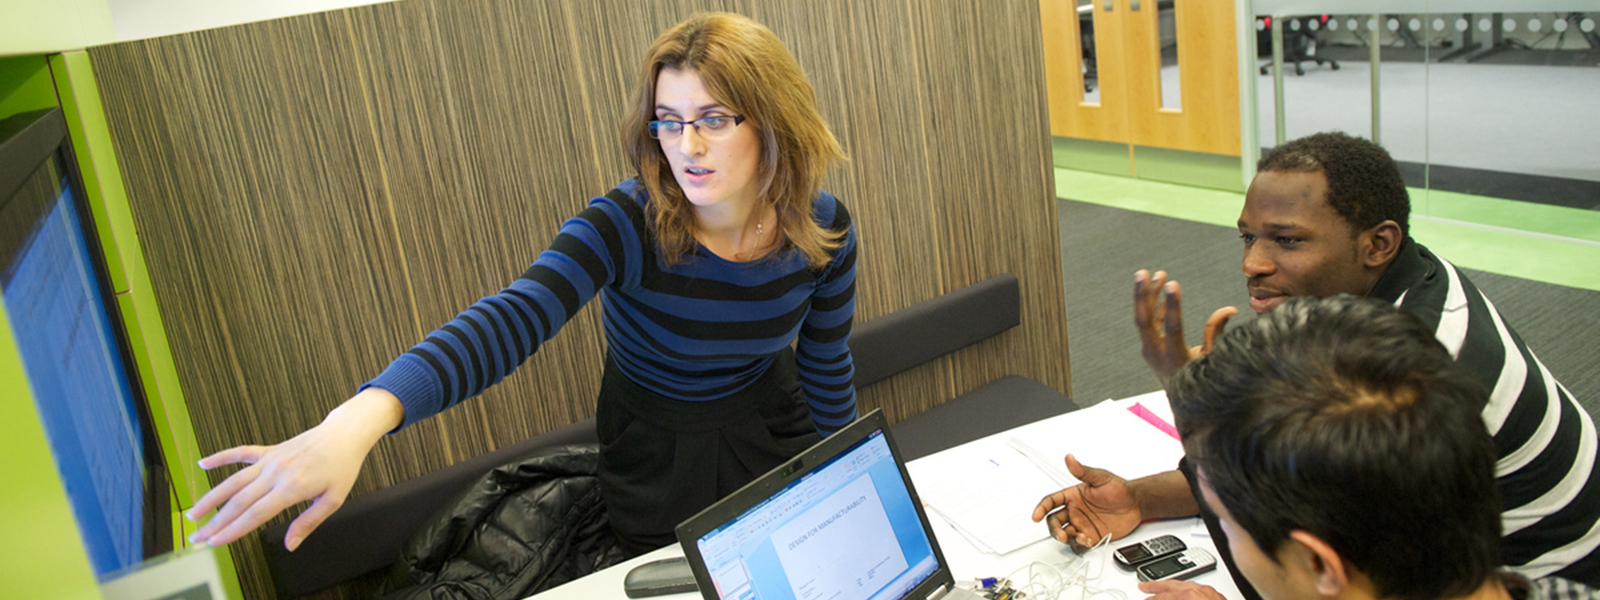 people using study area in library